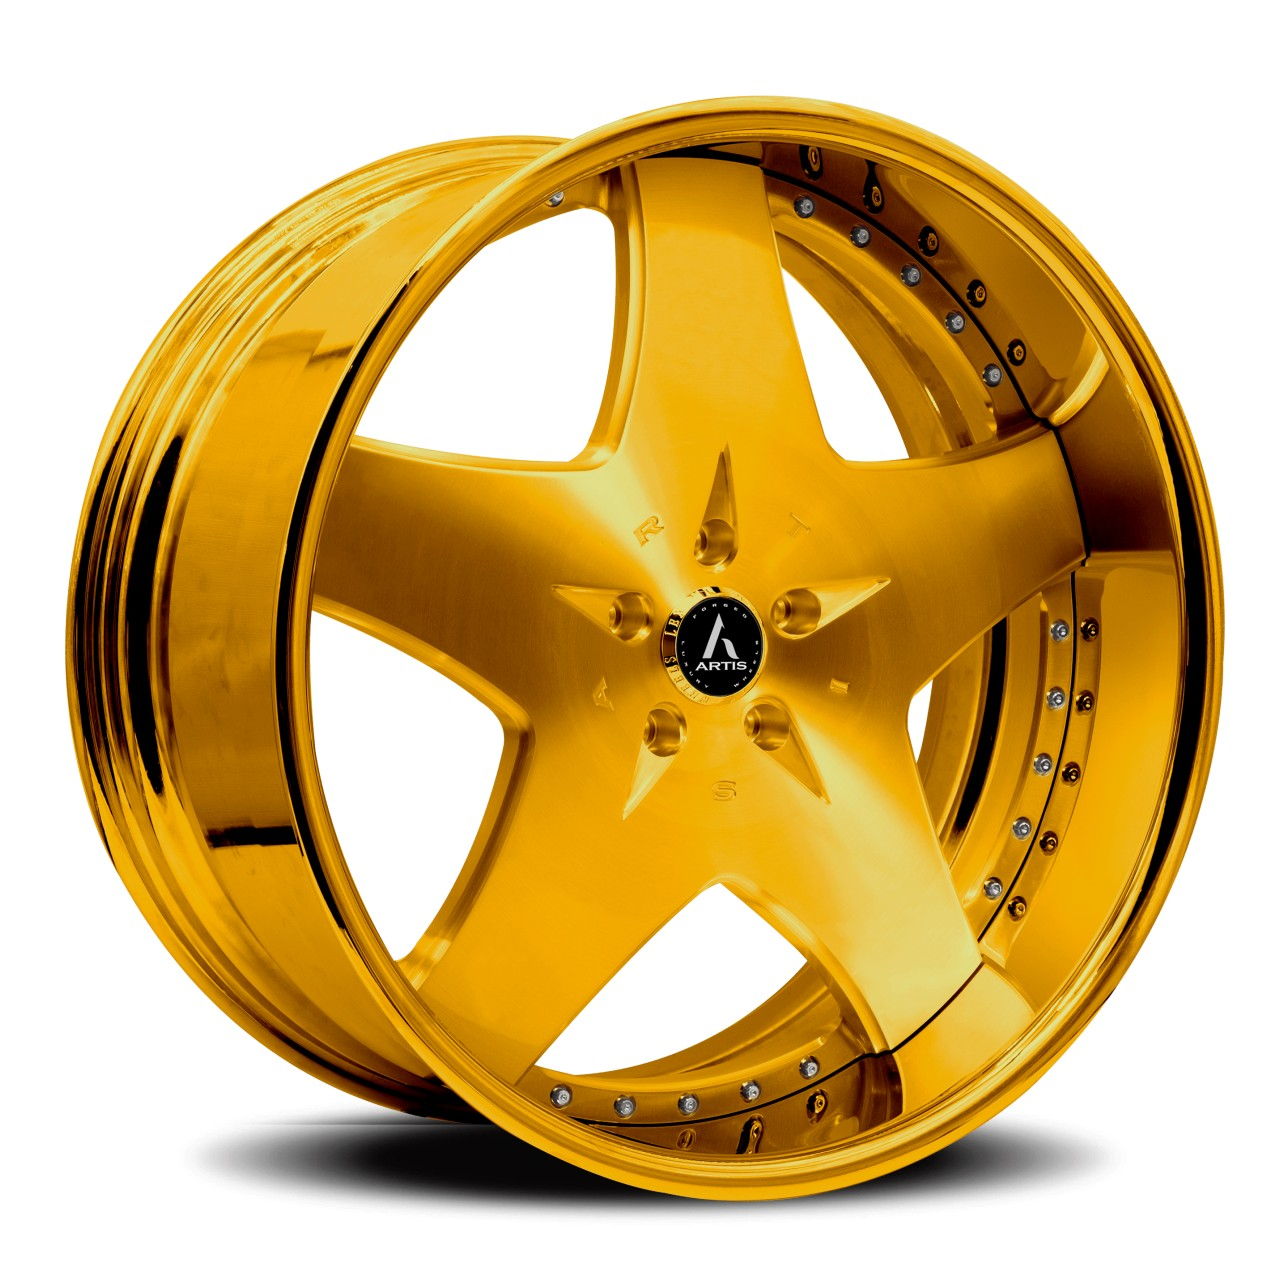 Artis Forged Cashville wheel with Gold finish